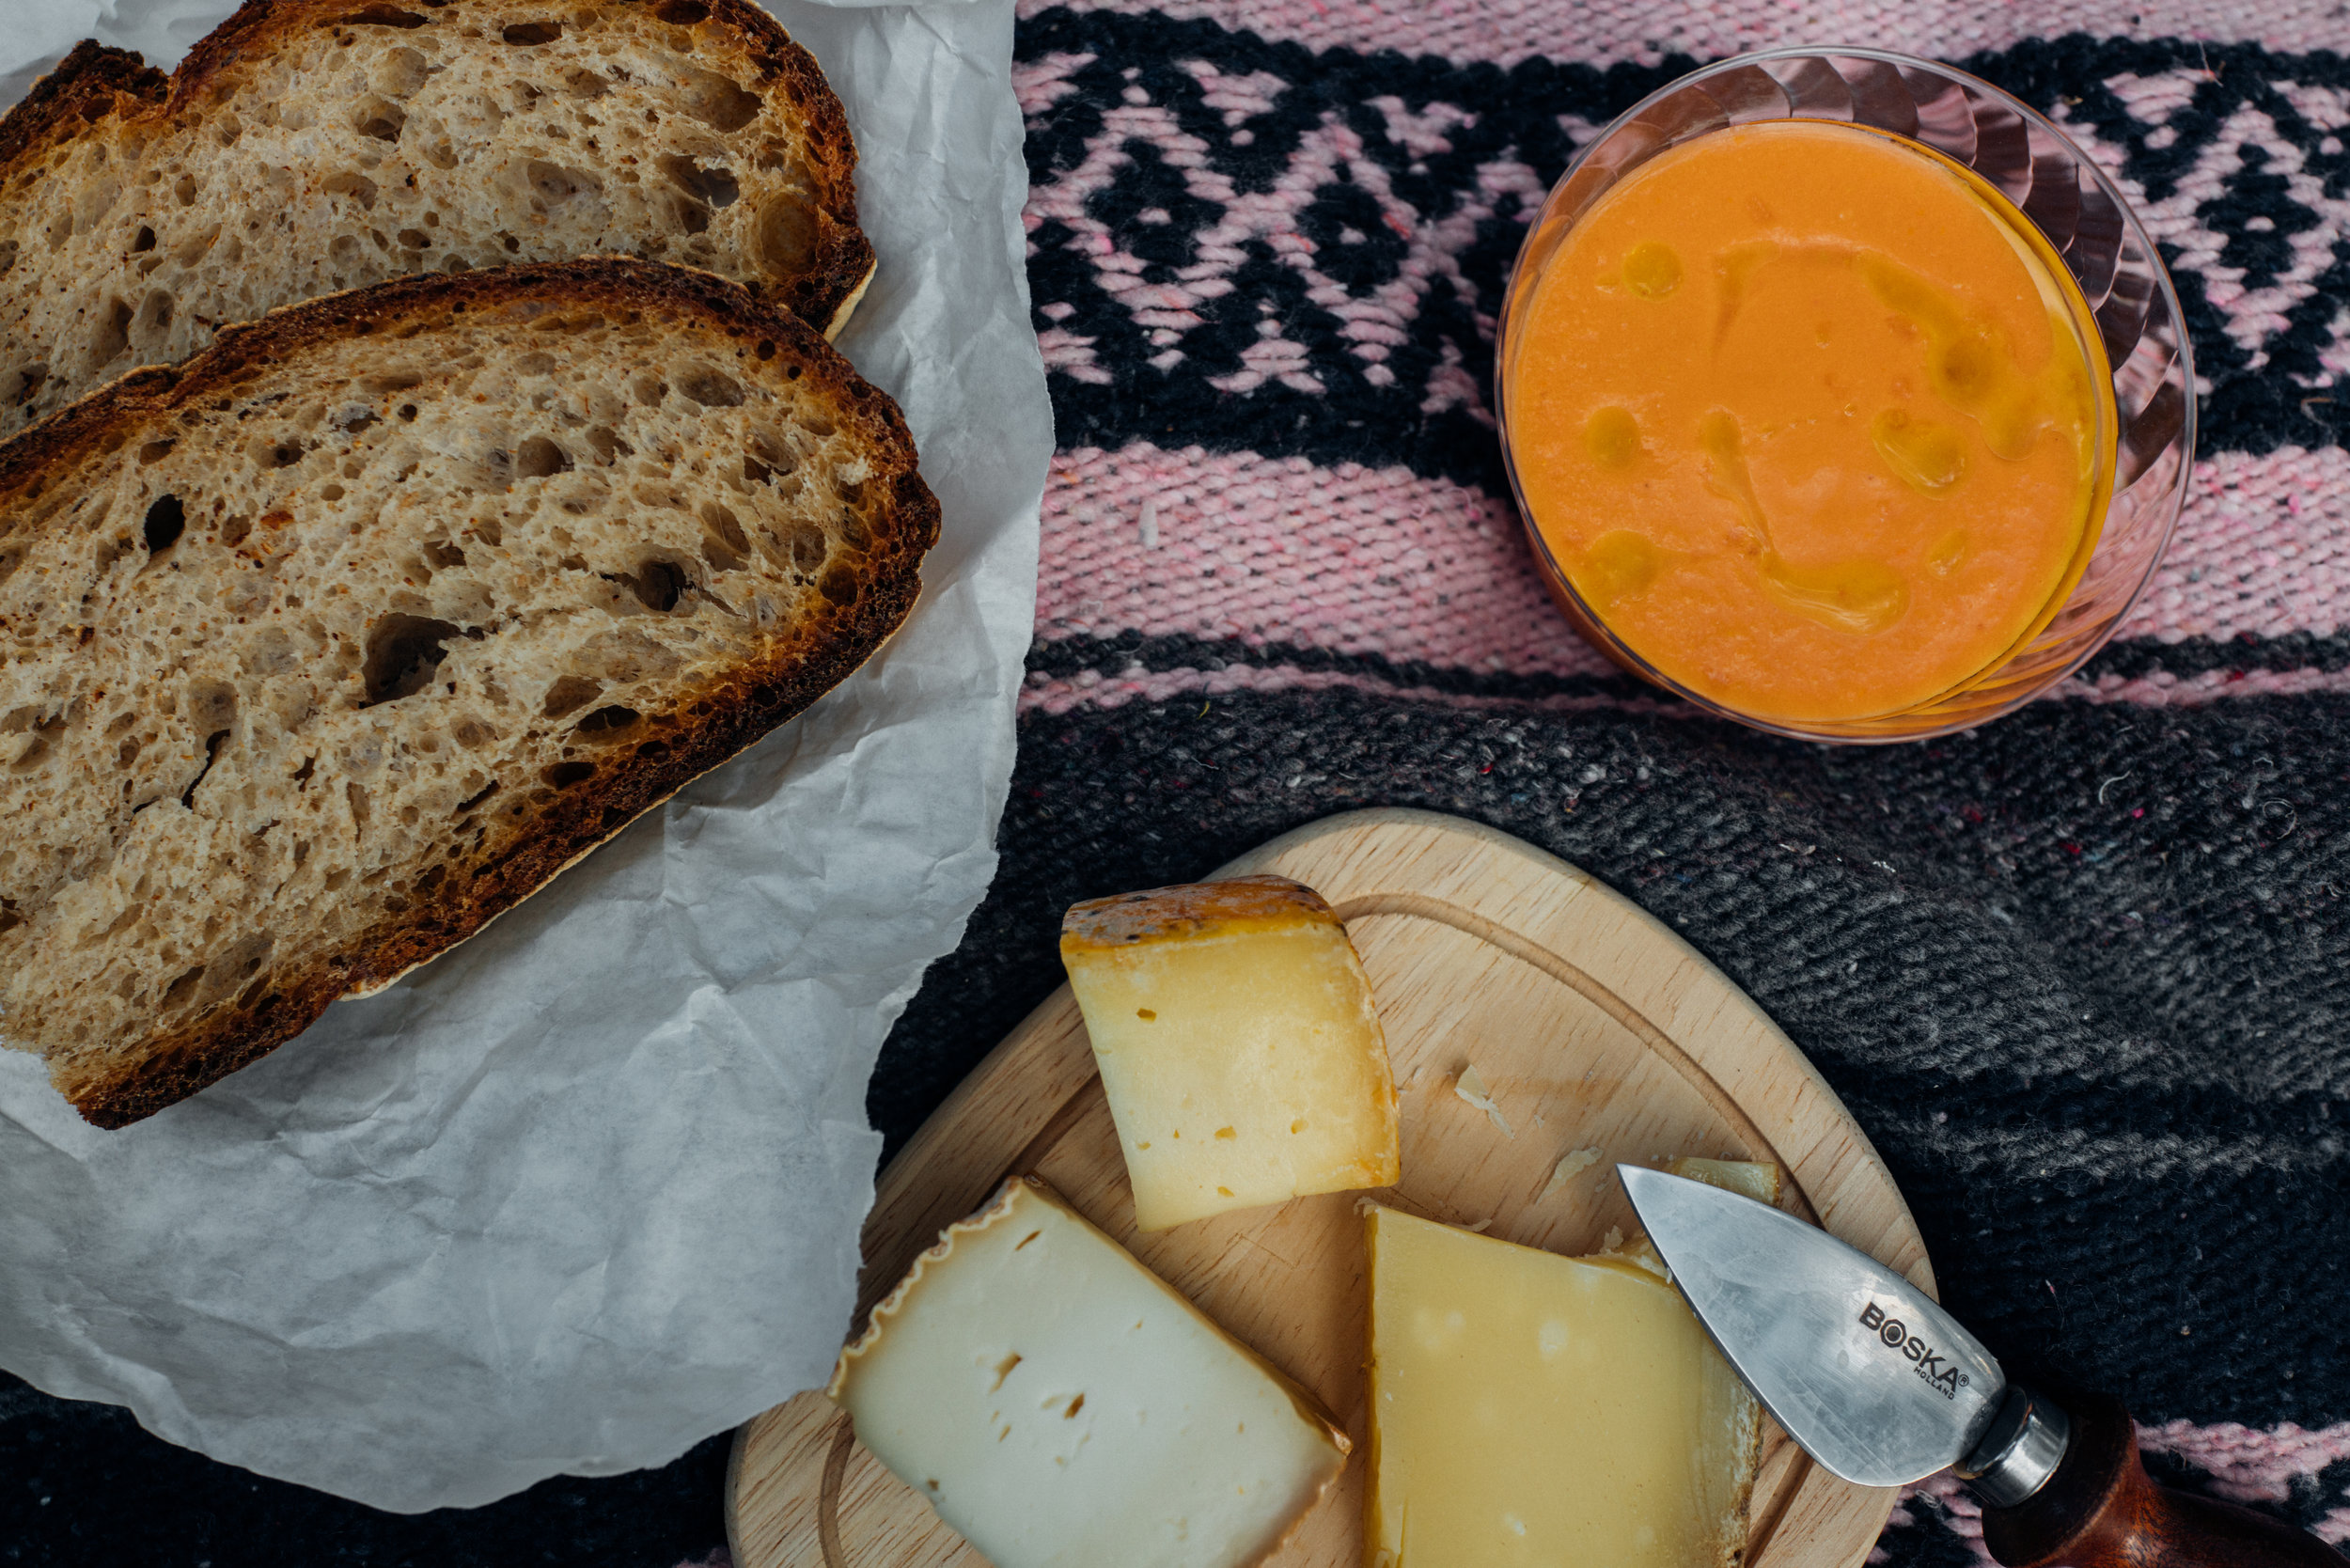 Picnic of gazpacho, sourdough bread and cheeses